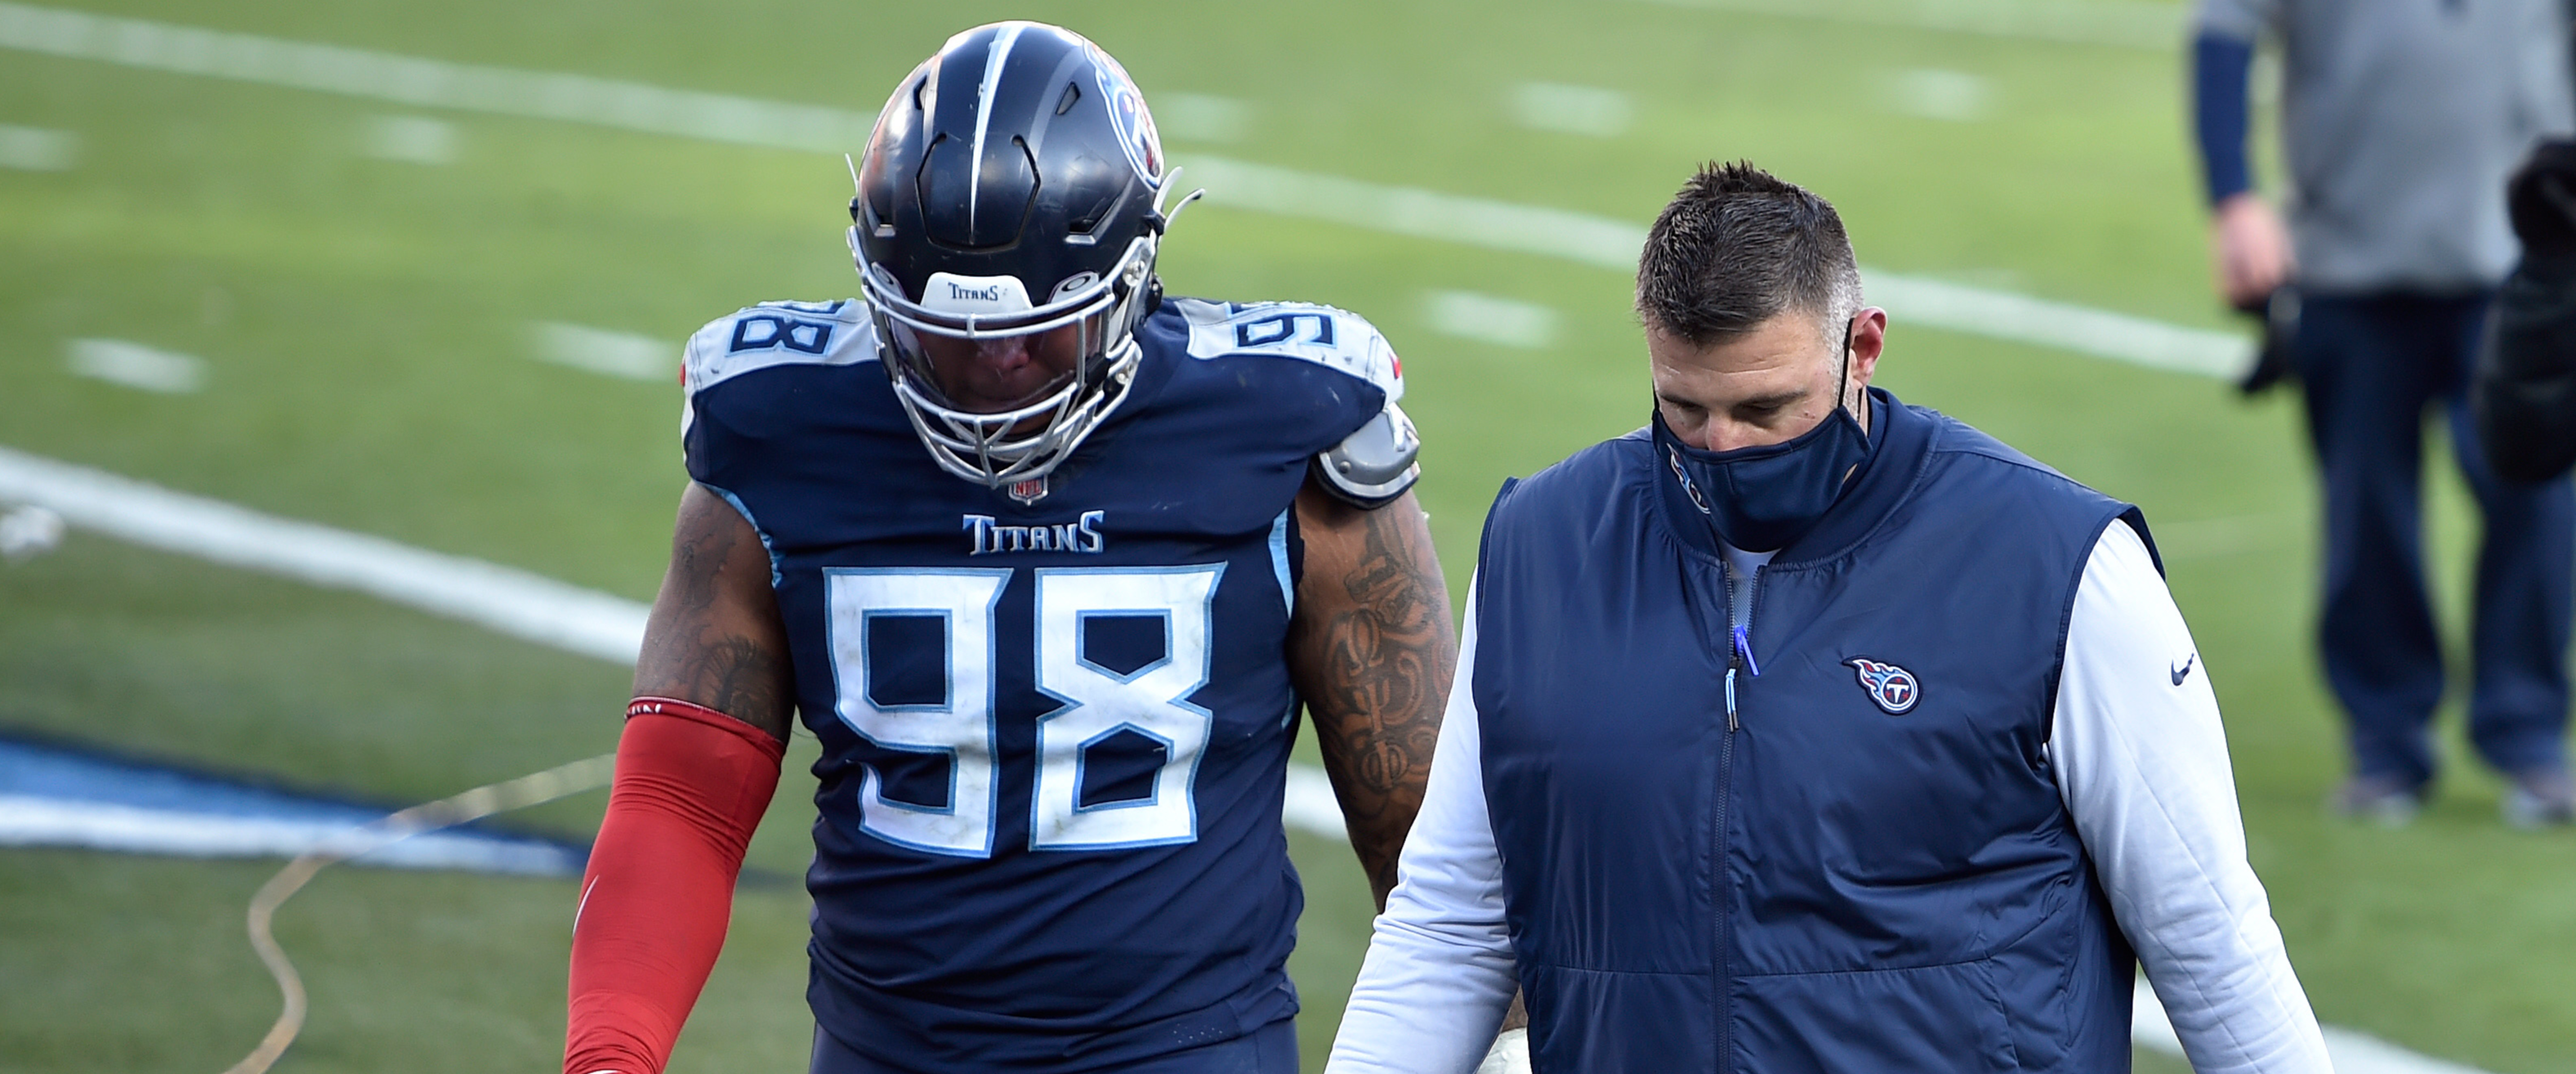 Titans: Coaching lost that game to the Ravens